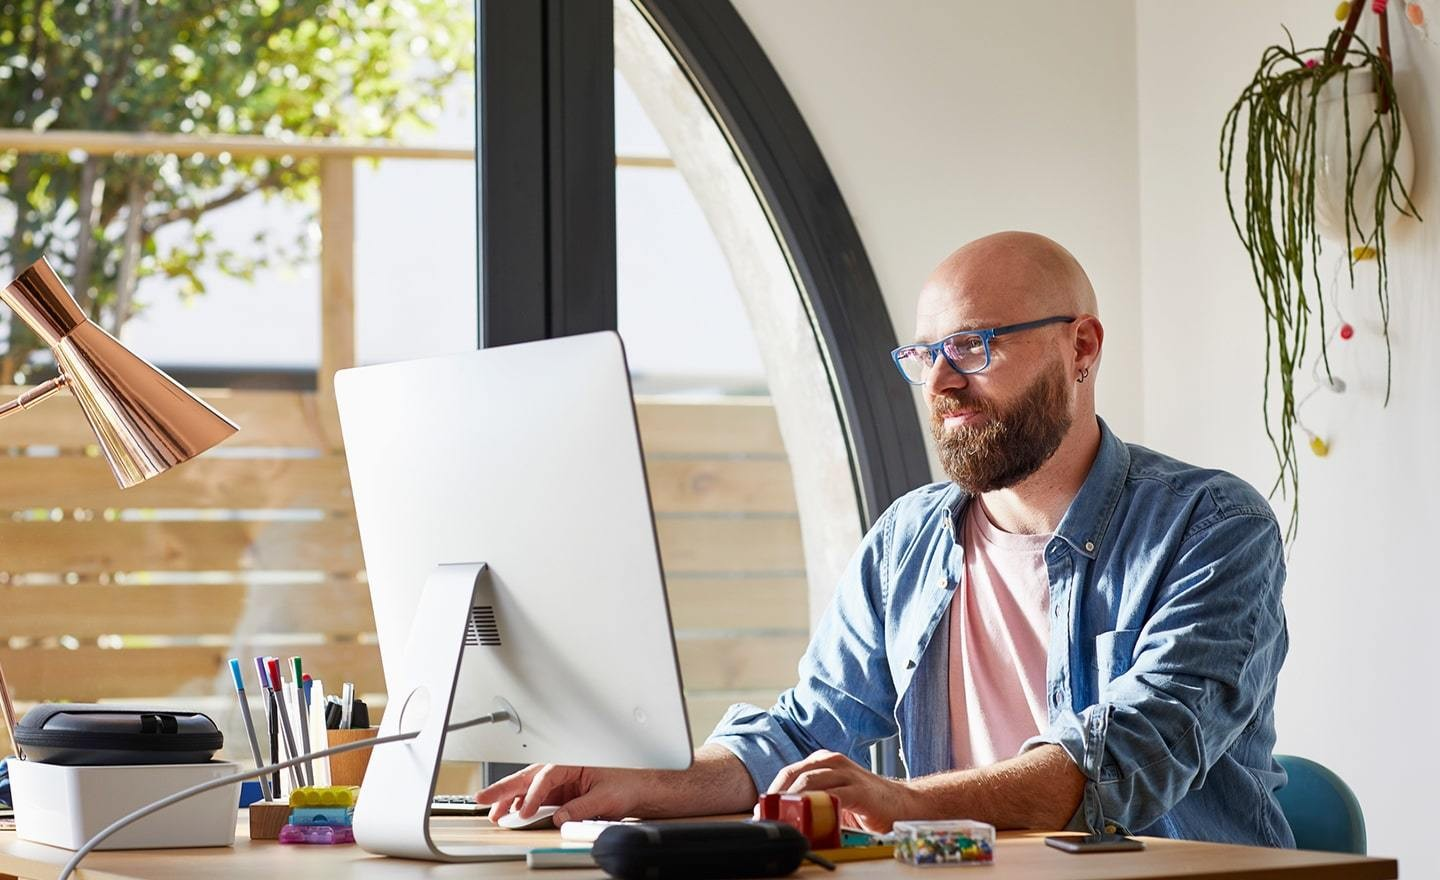 Man working at computer in home office 1